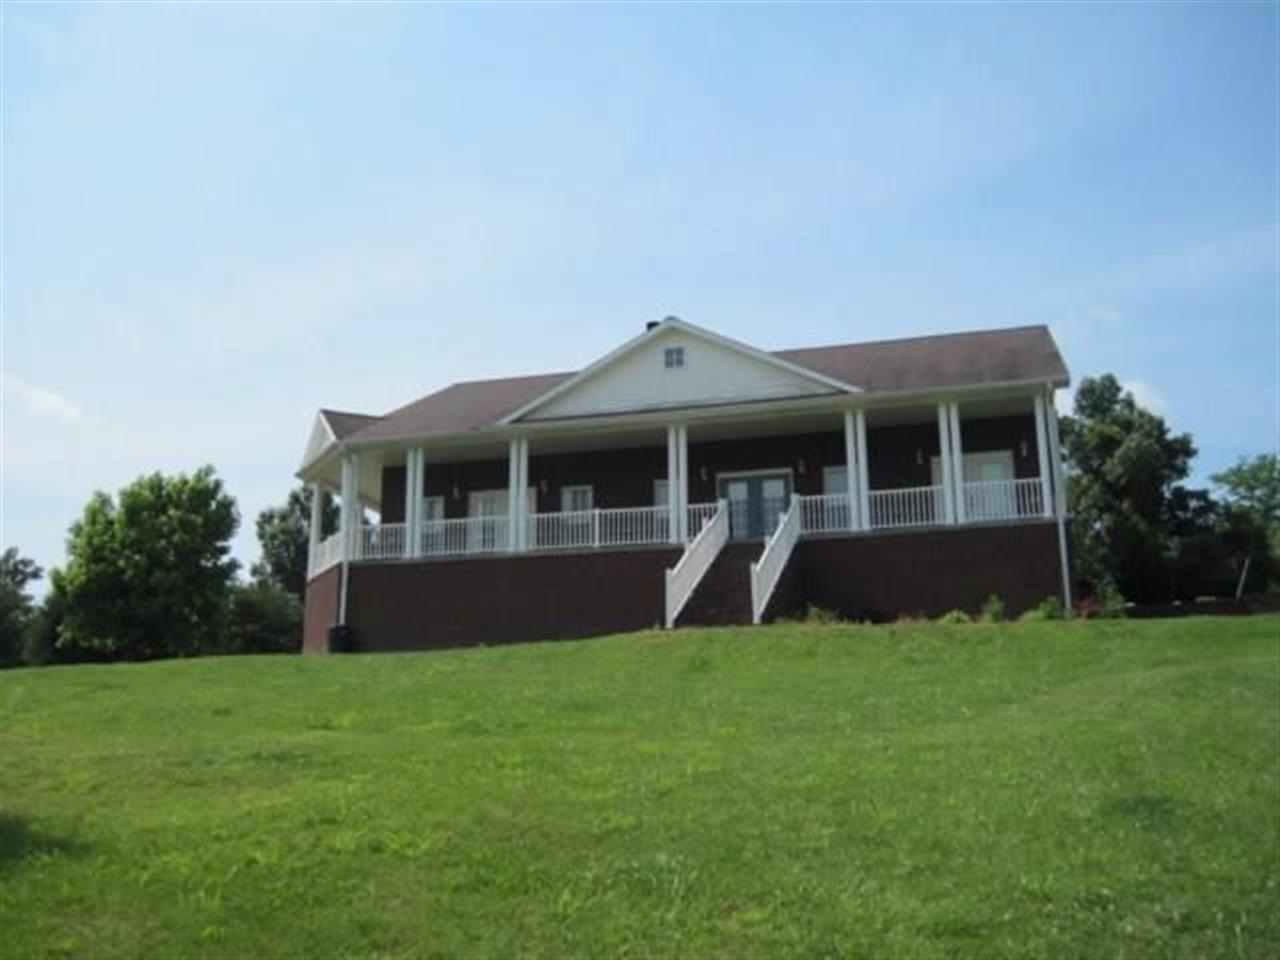 Image of Residential for Sale near Dawson Springs, Kentucky, in Hopkins county: 10.00 acres